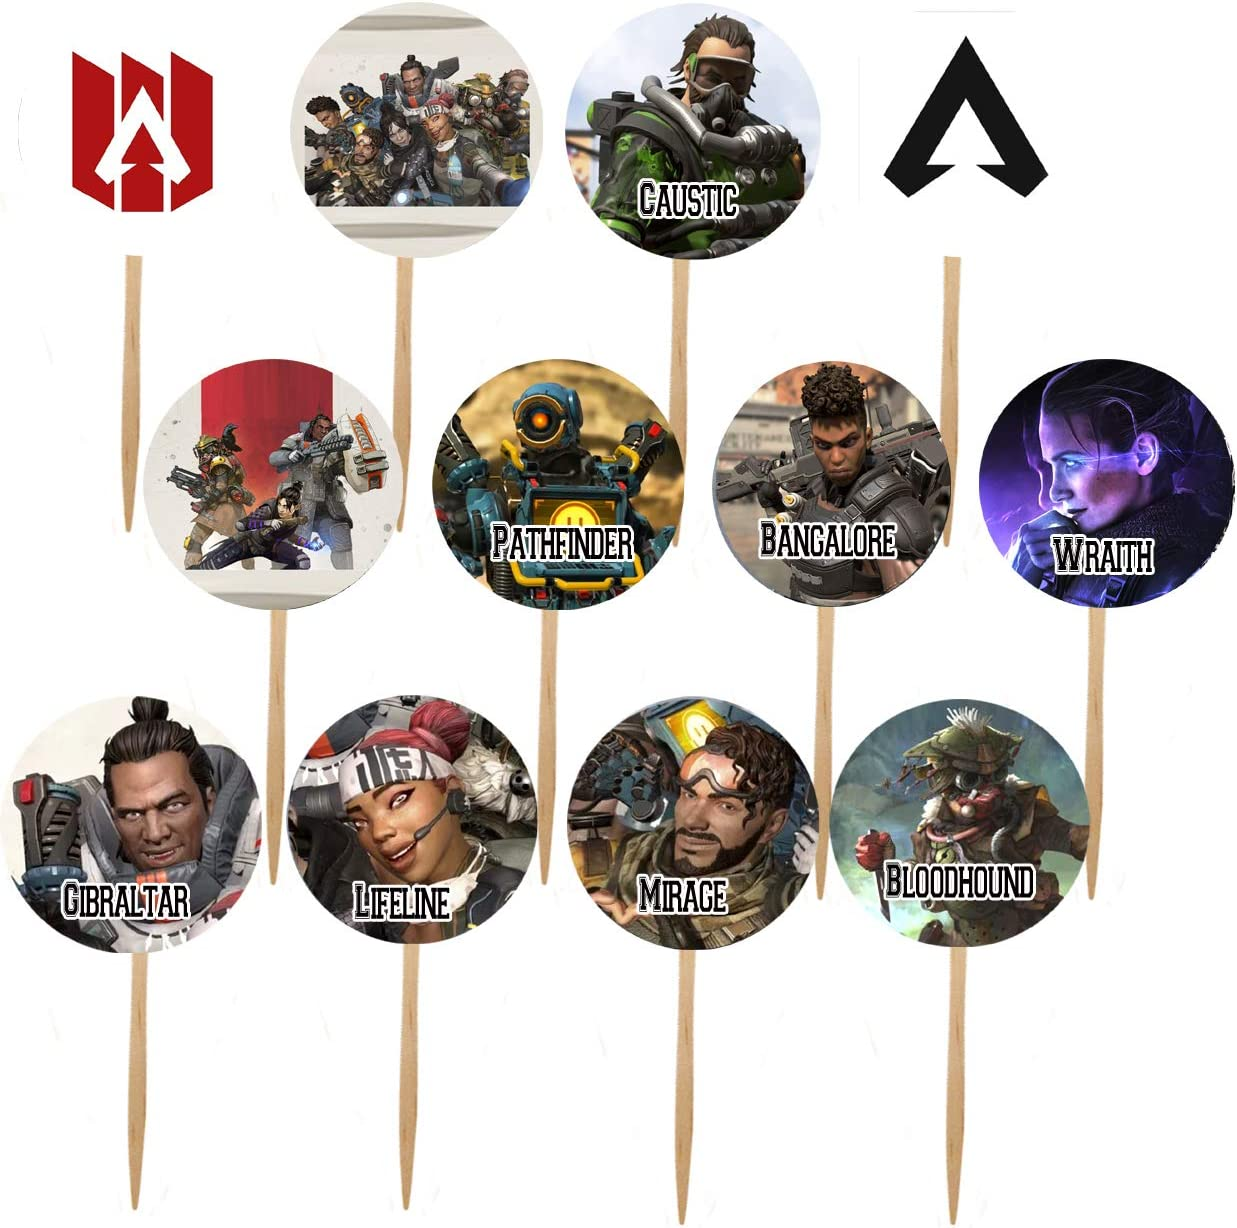 12. Apex Legends Double-Sided Cupcake/Cake Toppers - 12 pcs